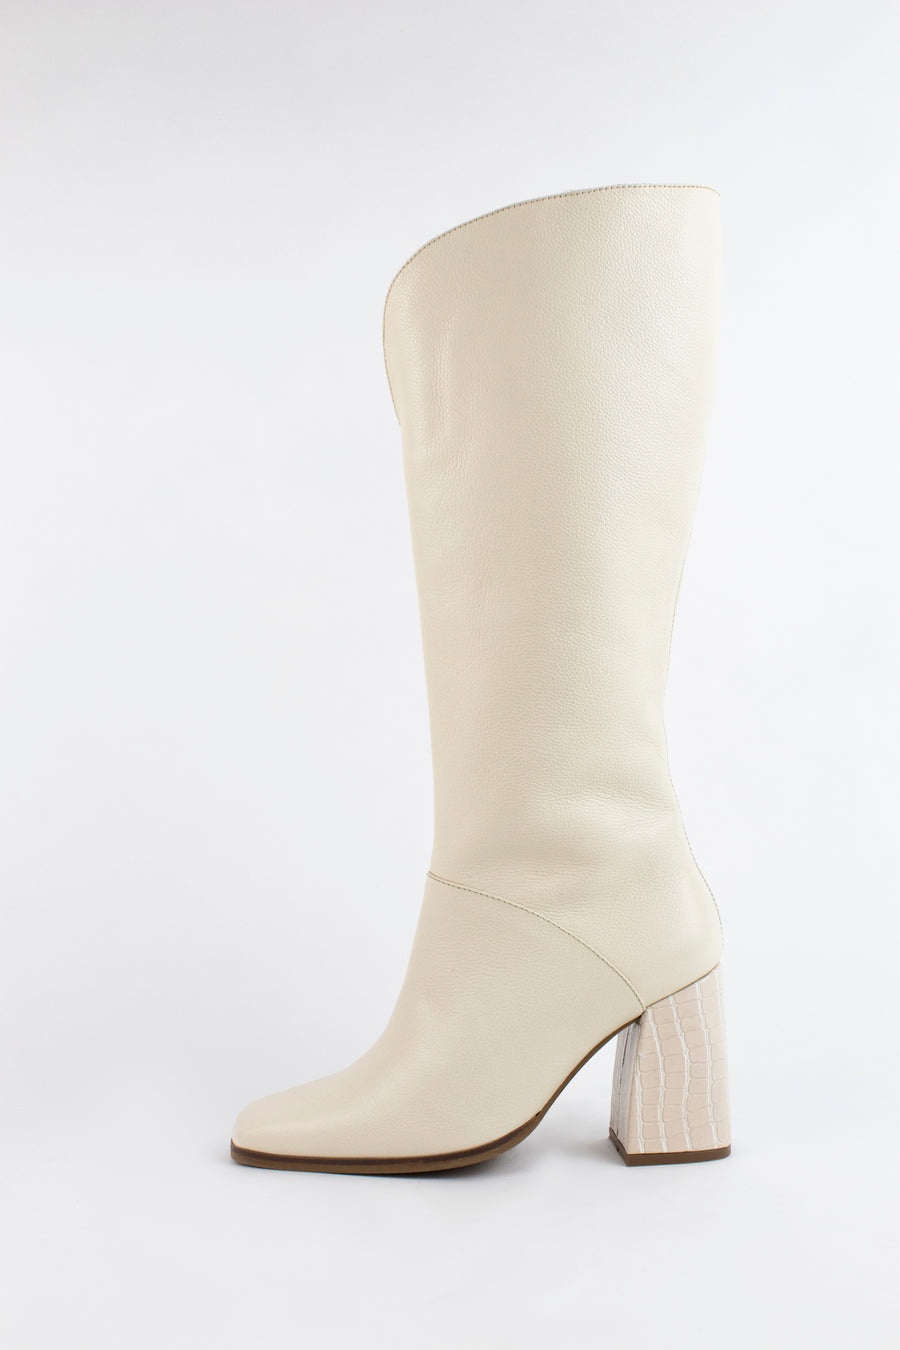 Alexandria knee high boots in Ivory leather